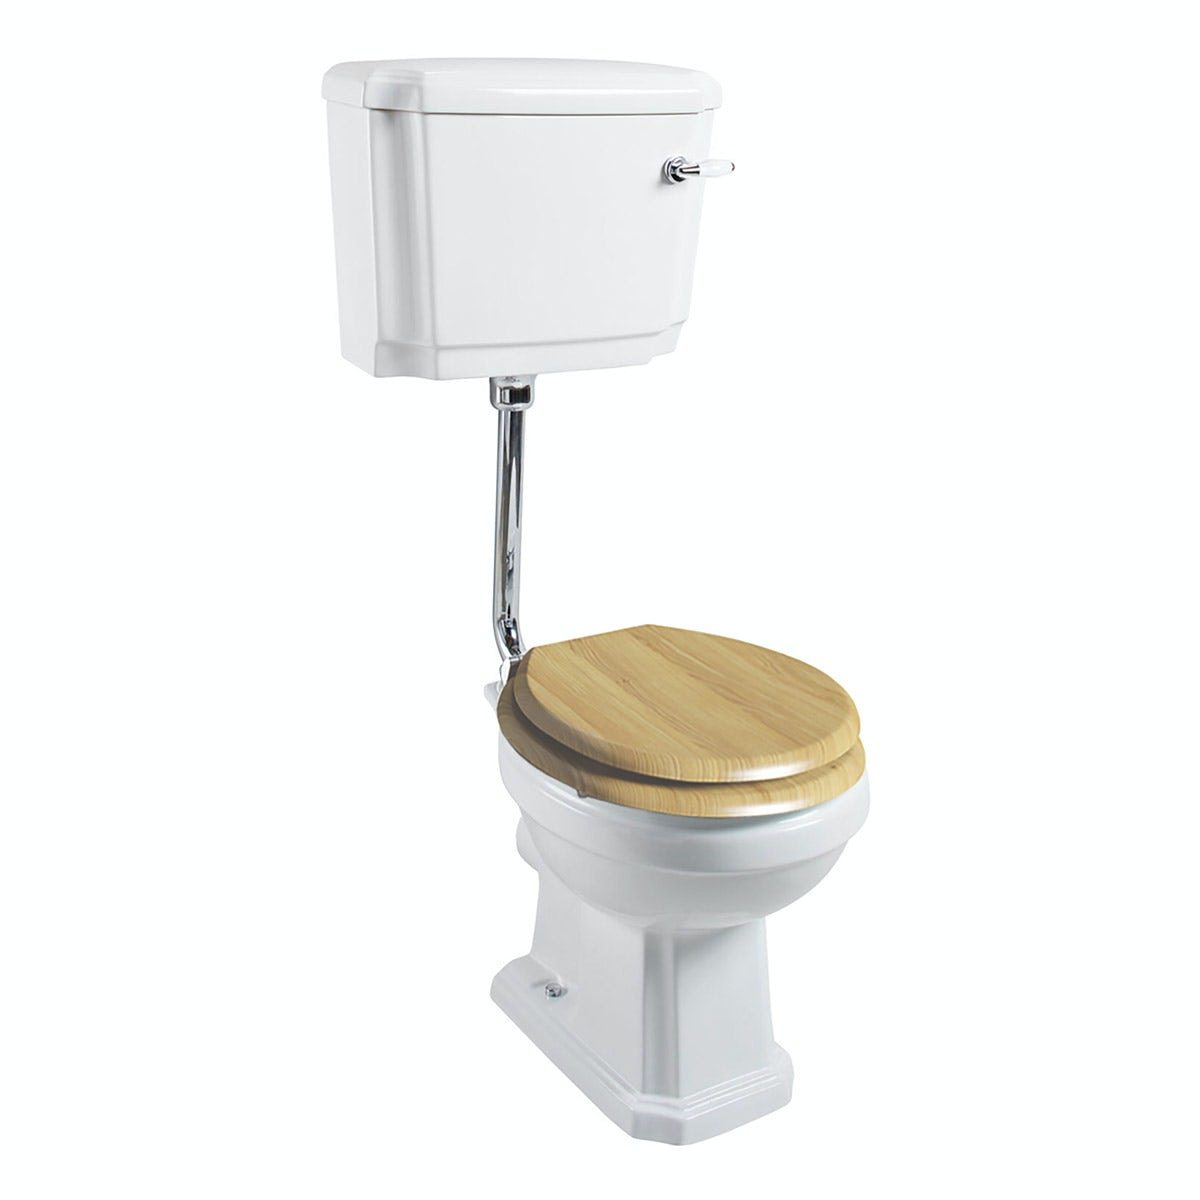 The Bath Co. Cromford low level toilet inc oak soft close seat